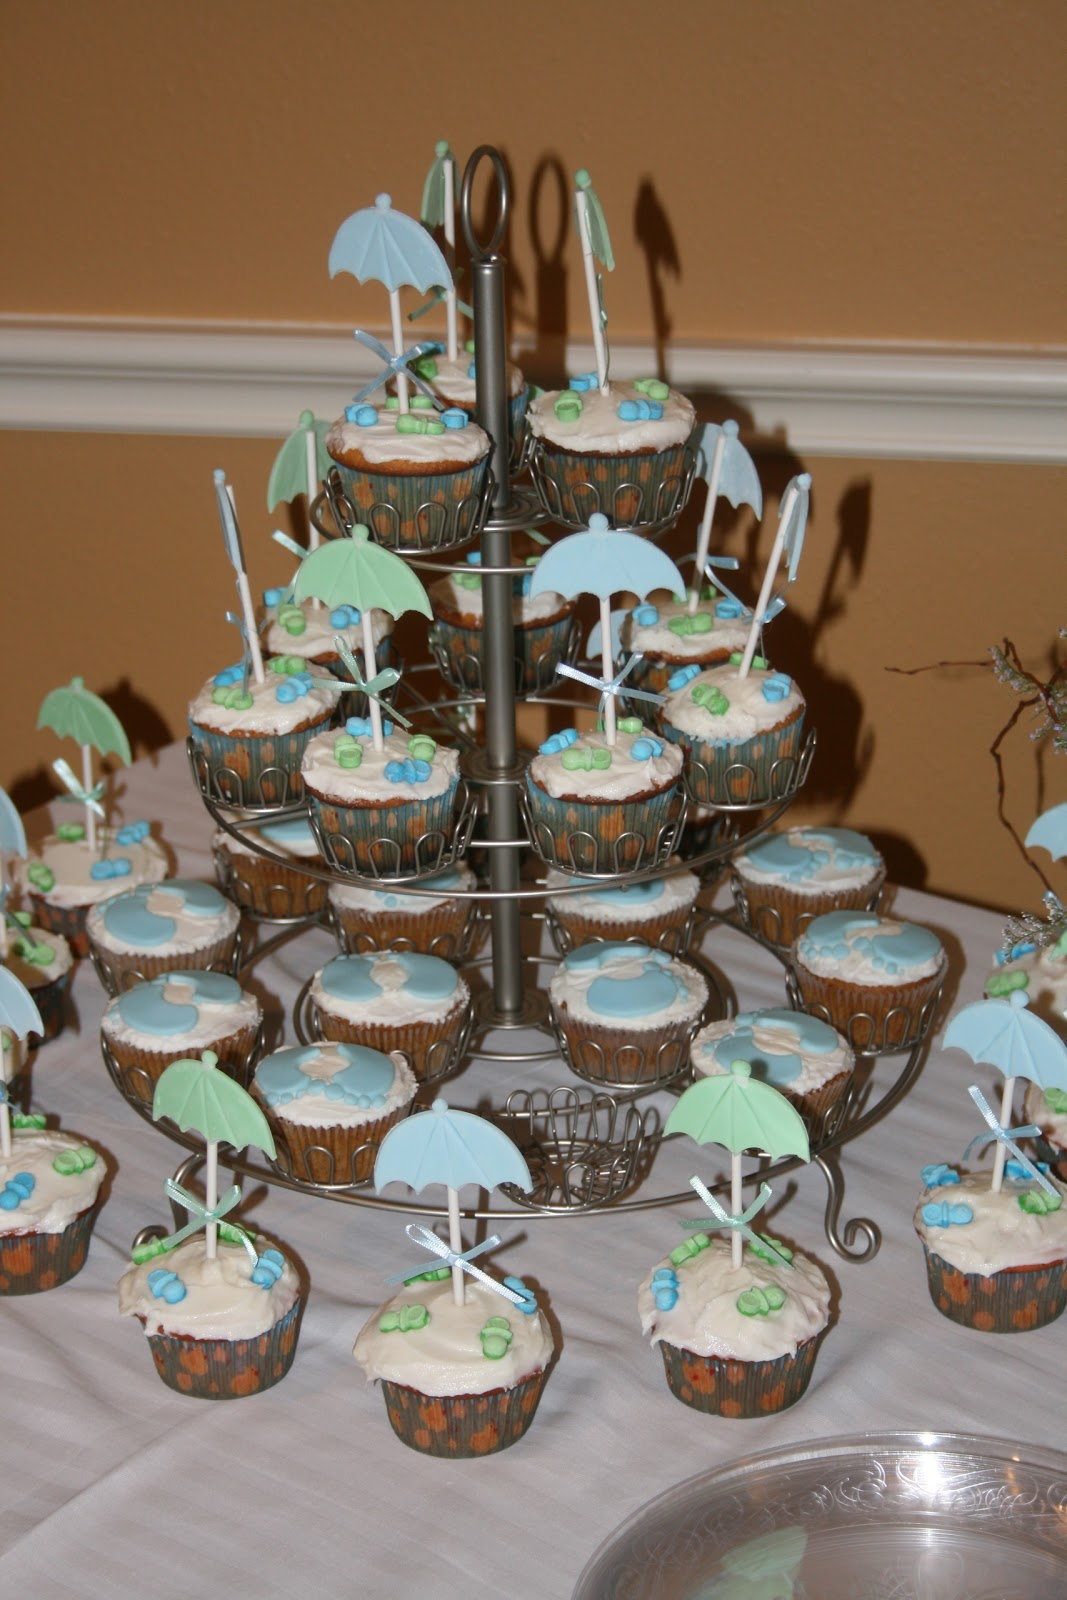 Hudson's baby shower umbrella cupcakes